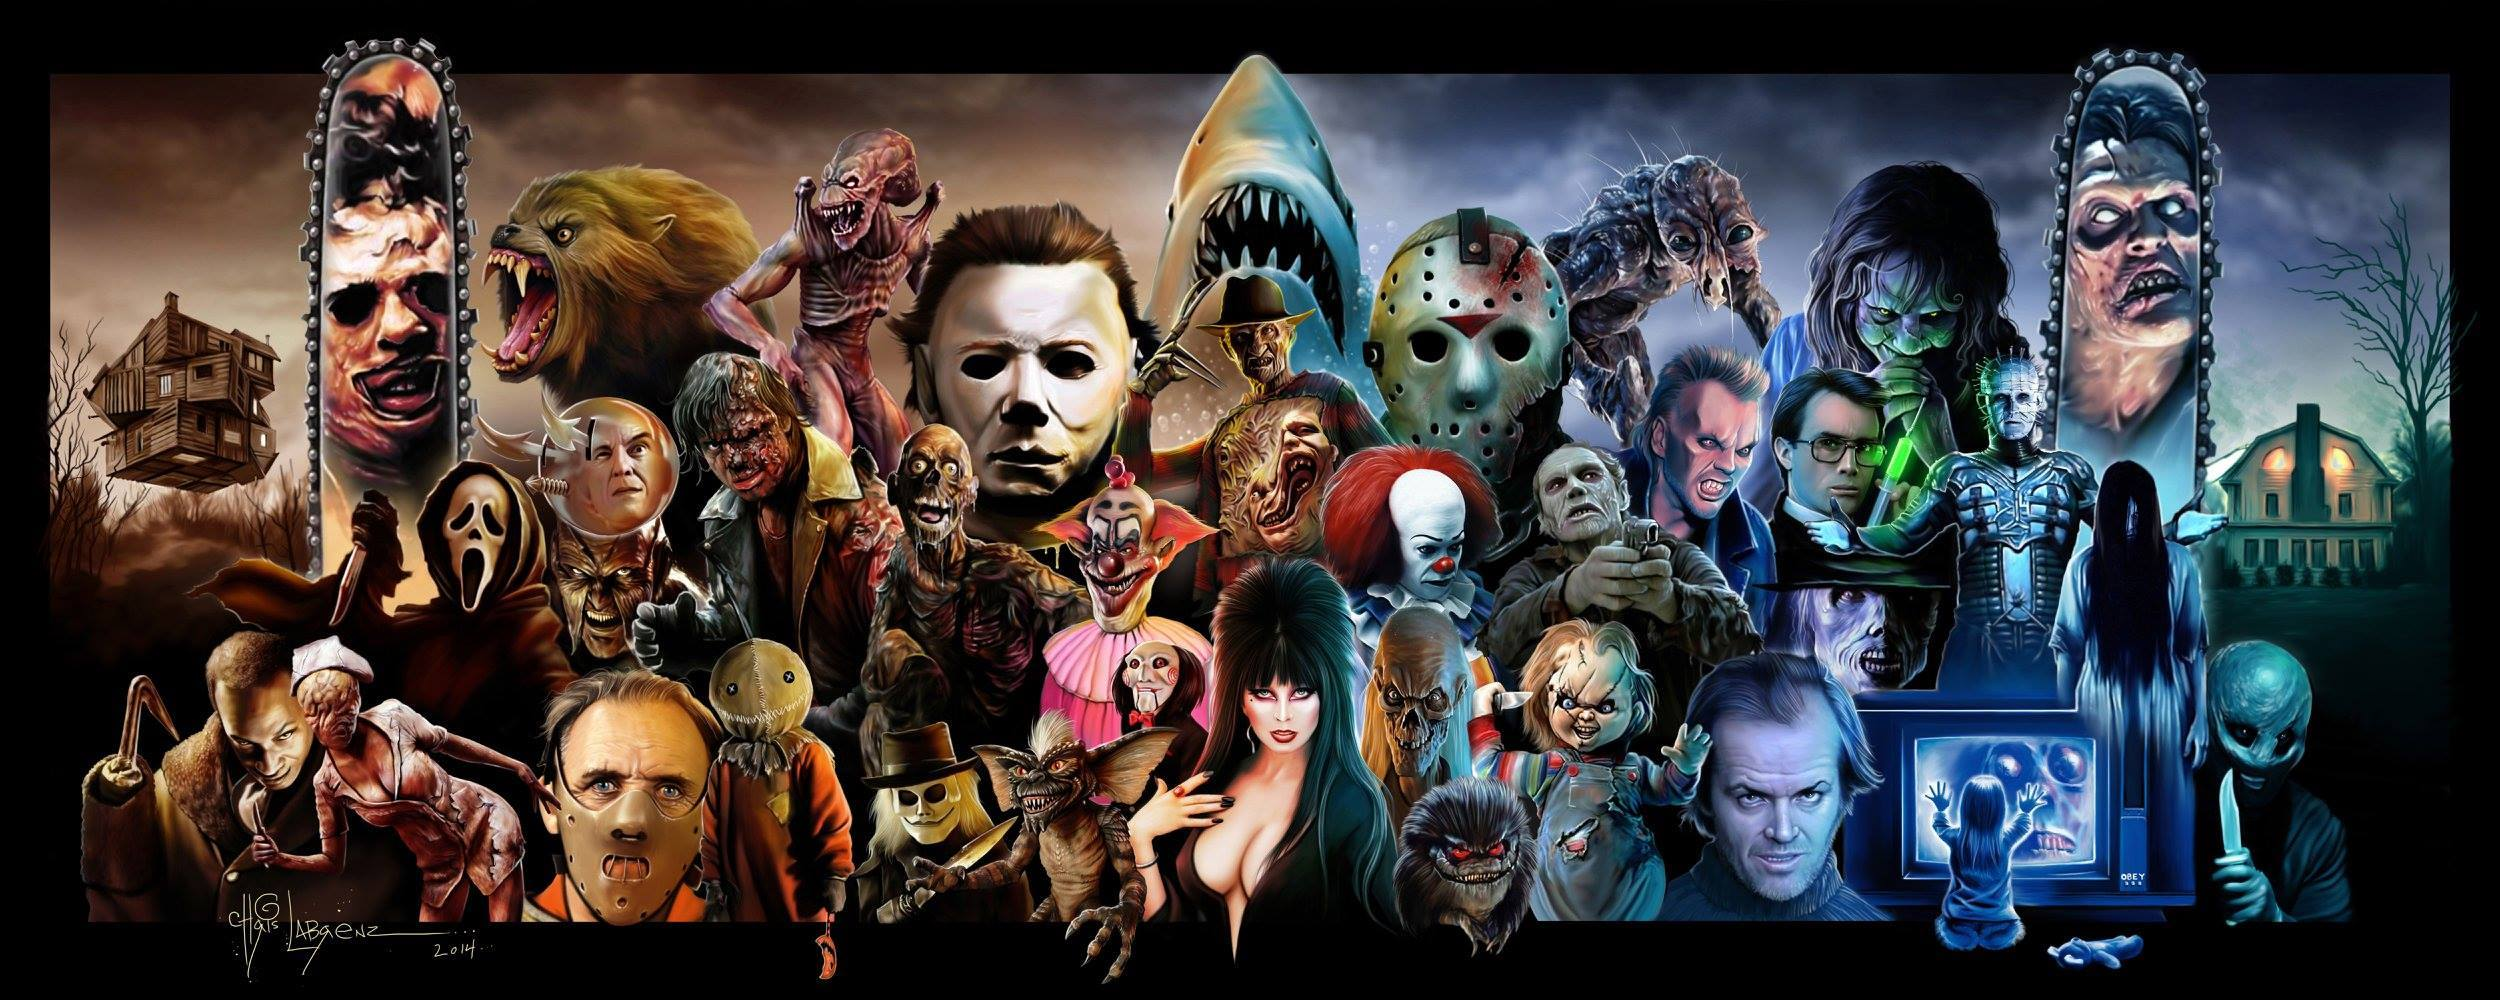 Horror Movie Wallpapers Wallpapertag: Horror Movies Wallpapers